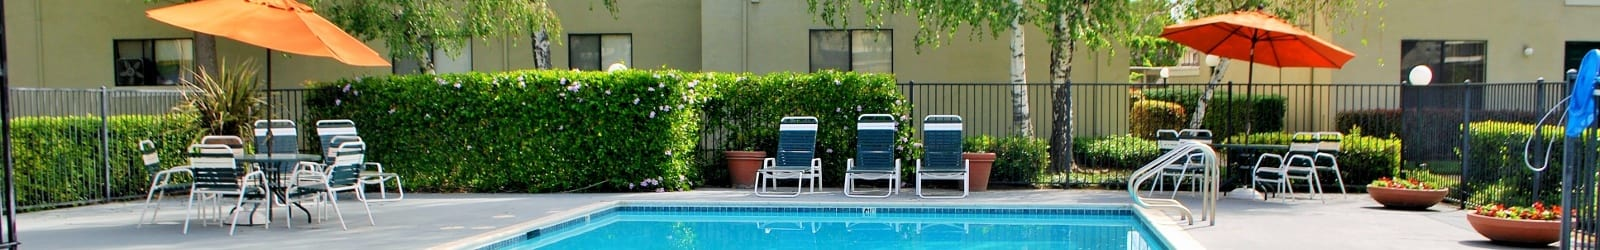 we welcome suggestions & feedback at California Center Apartments  in Sacramento, CA